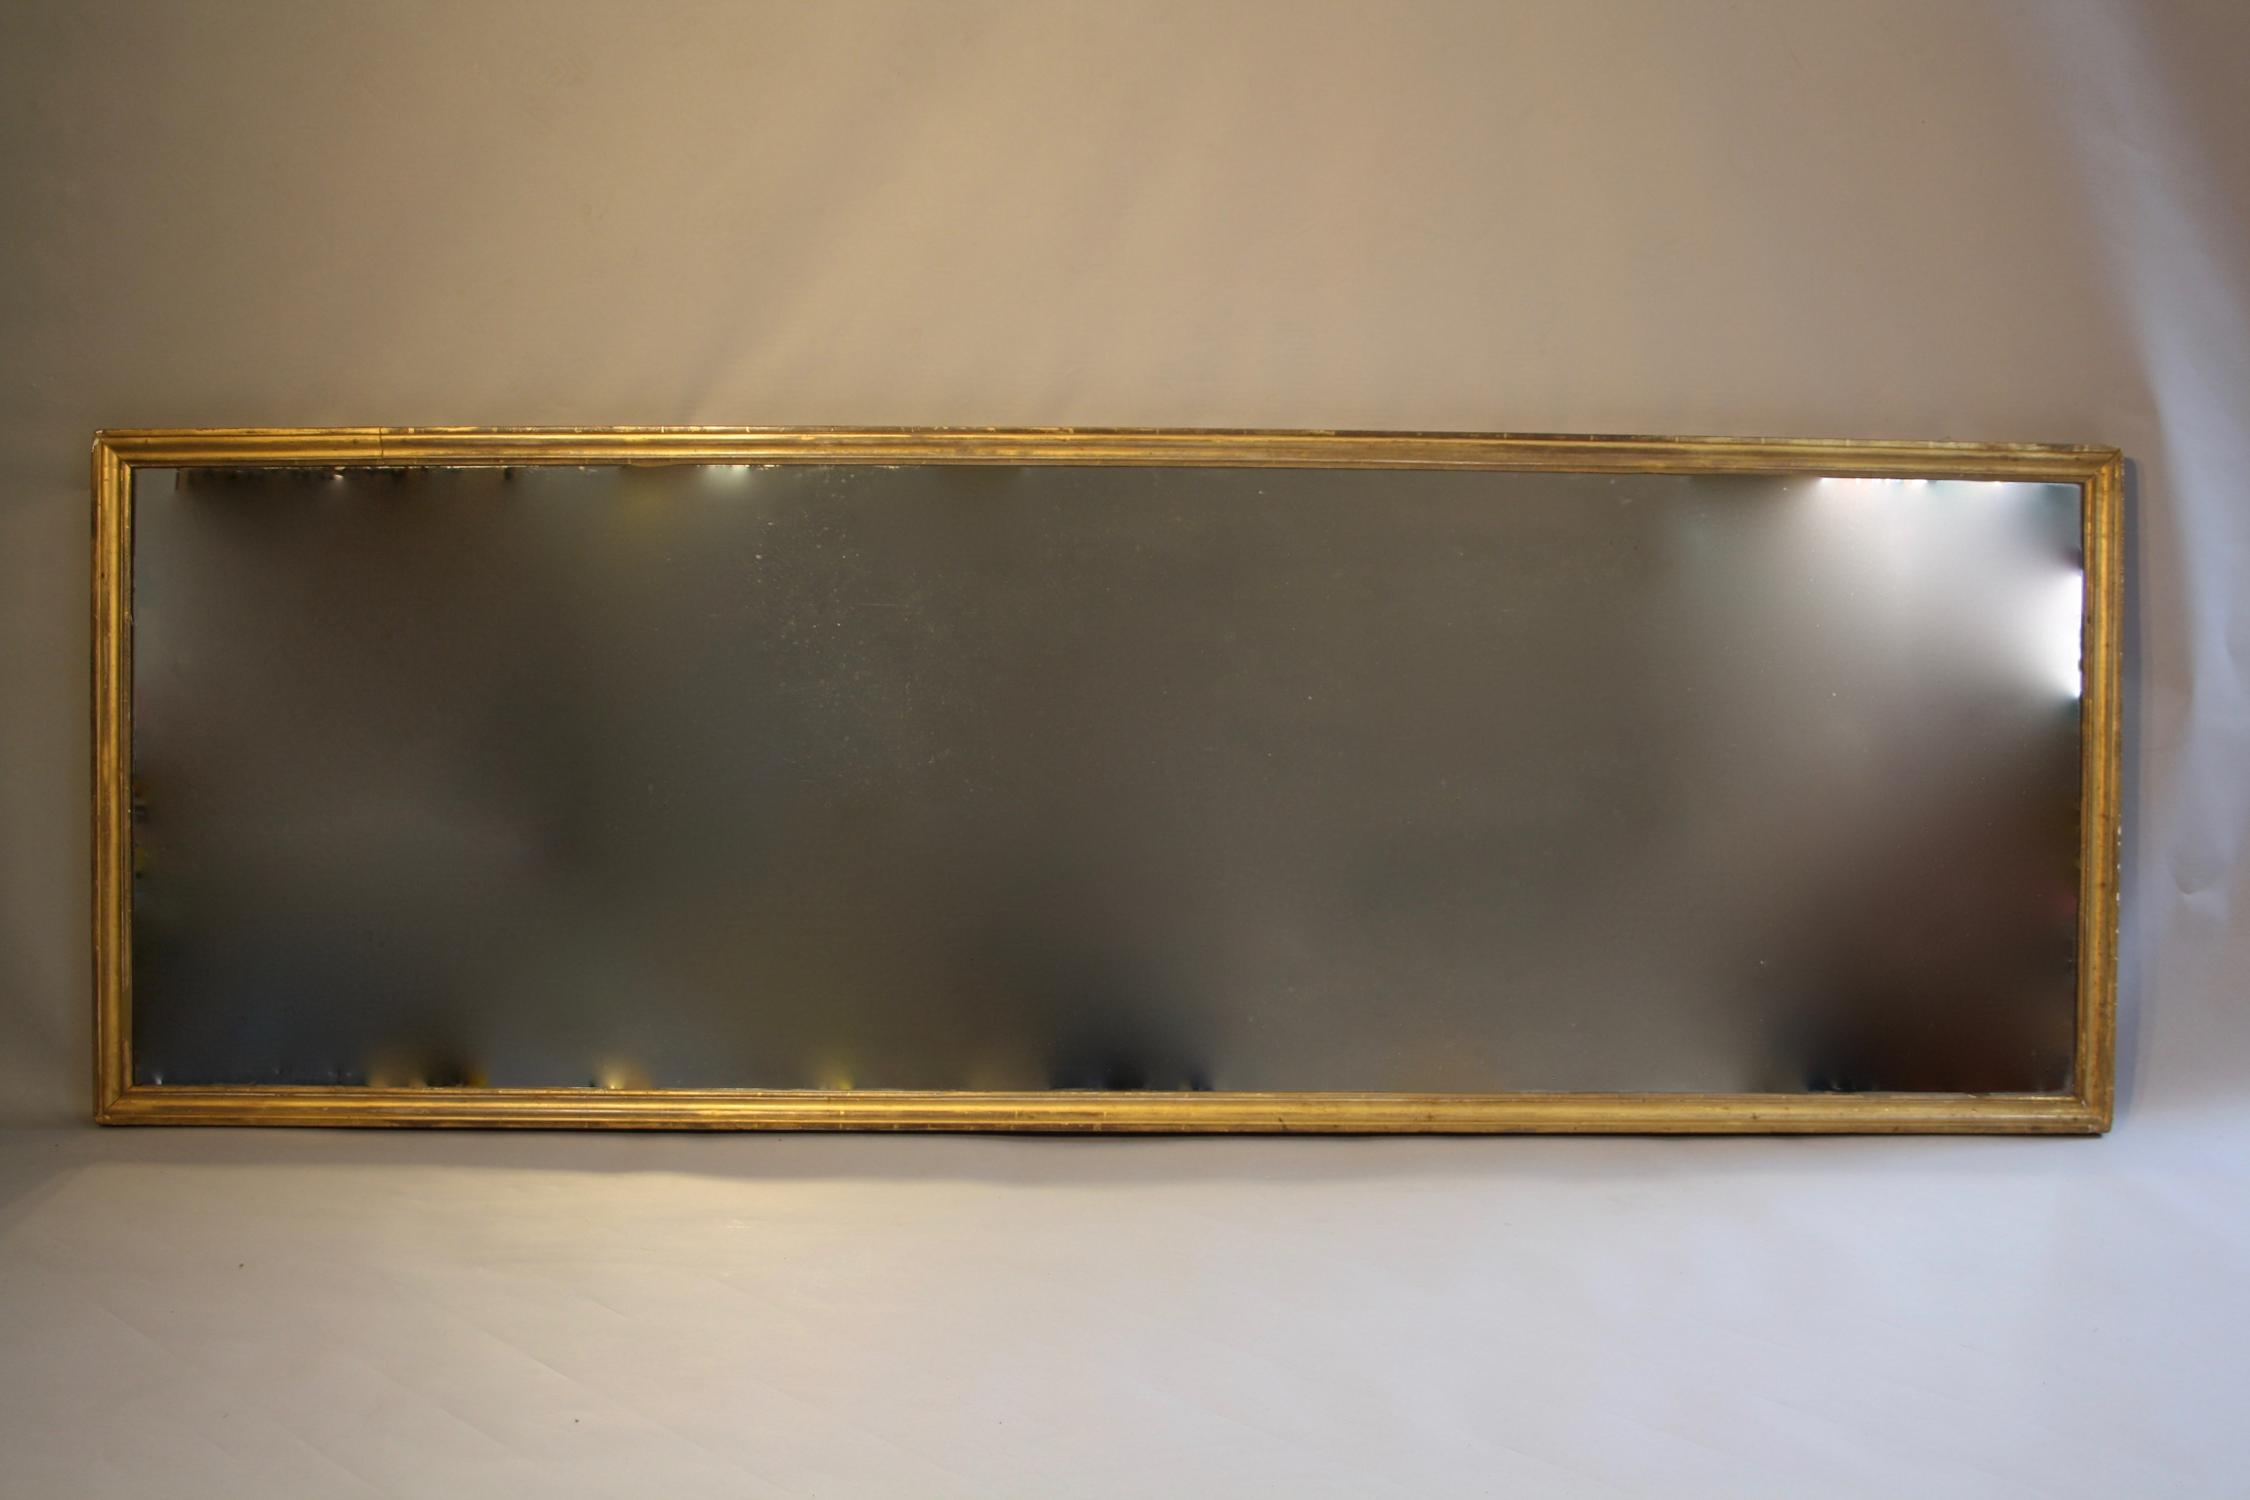 English pier glass mirror c1860